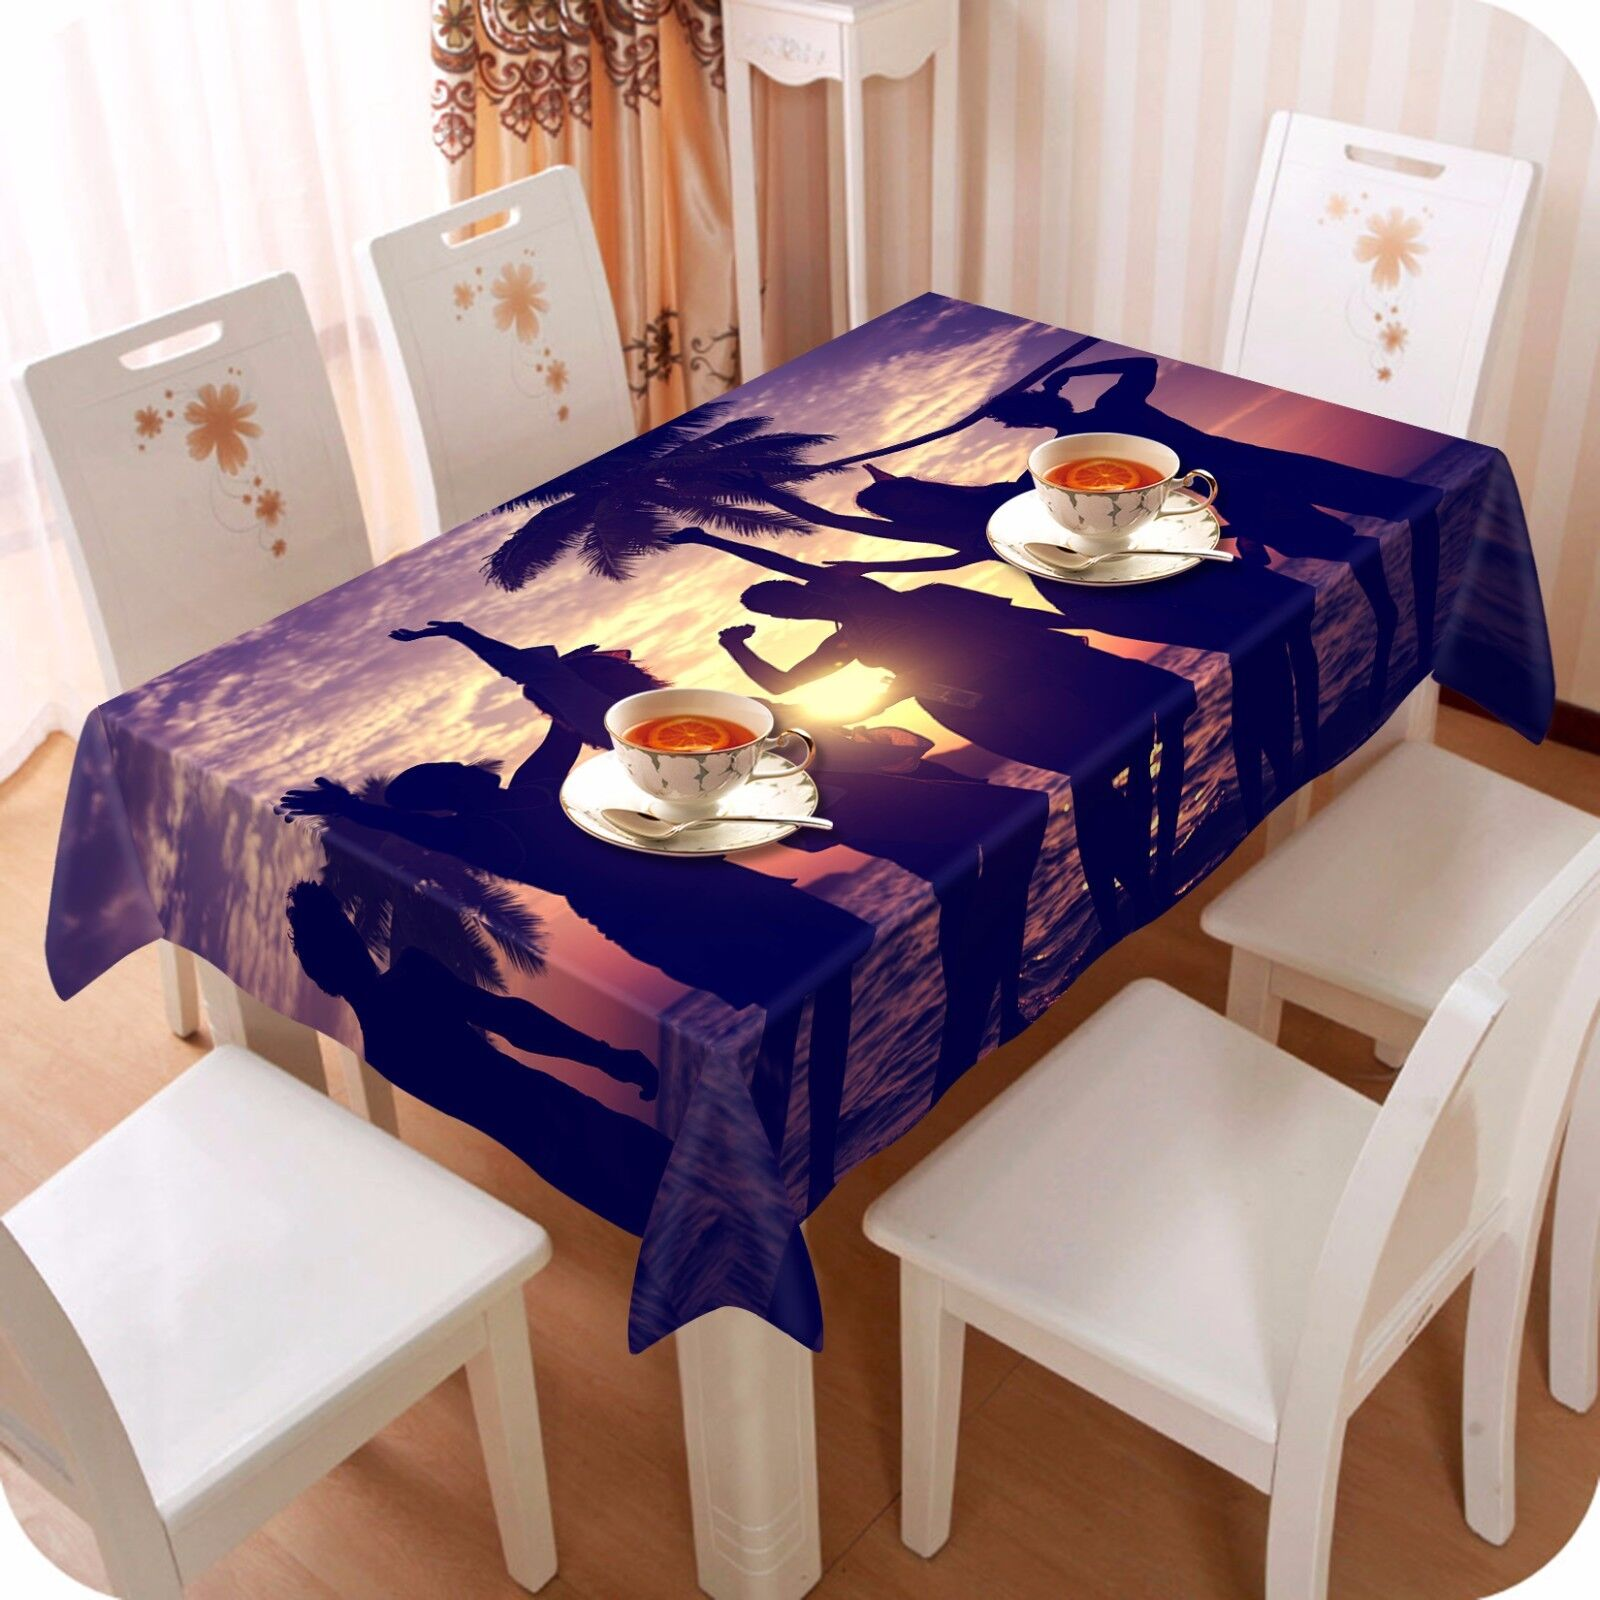 3D Shadow 4510 Tablecloth Table Cover Cloth Birthday Party Event AJ WALLPAPER AU